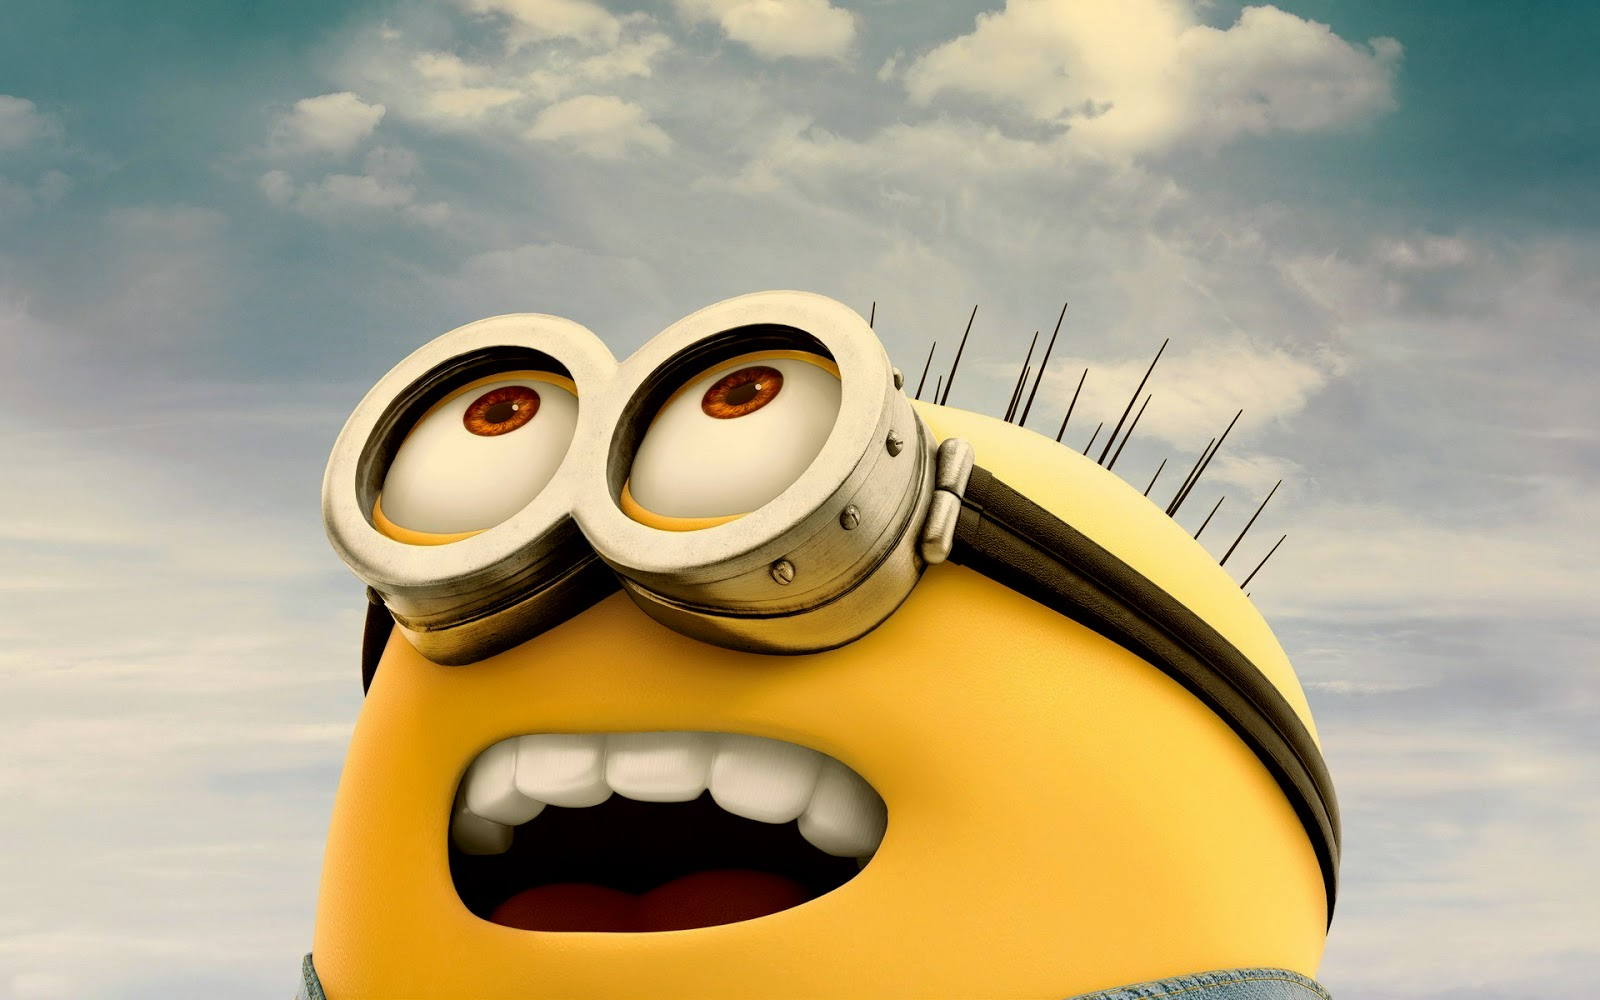 http://gallerycartoon.blogspot.com/2015/03/minions-movie-pictures-8.html